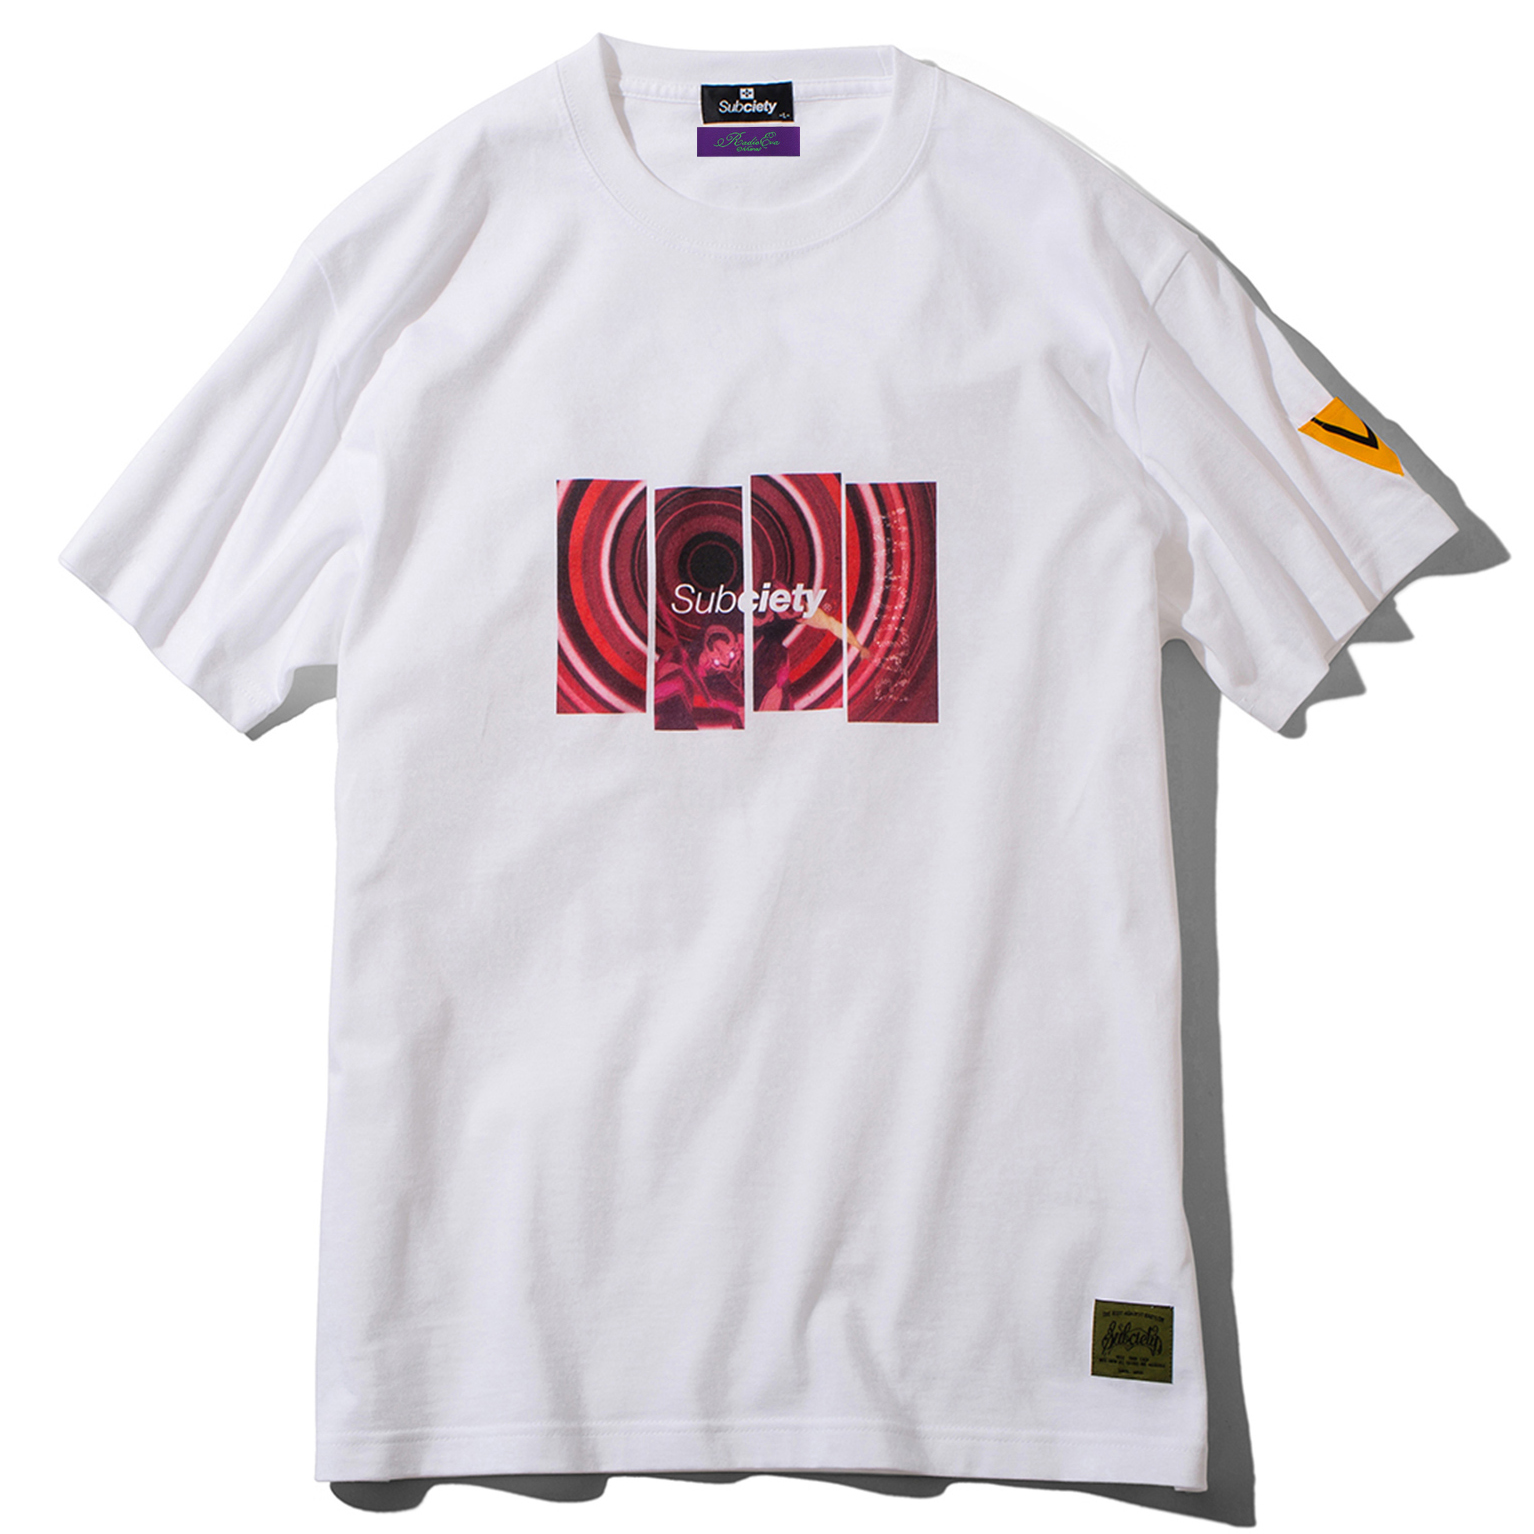 DAMAGED RATIO S/S T-Shirt by Subciety (WHITE/RED)